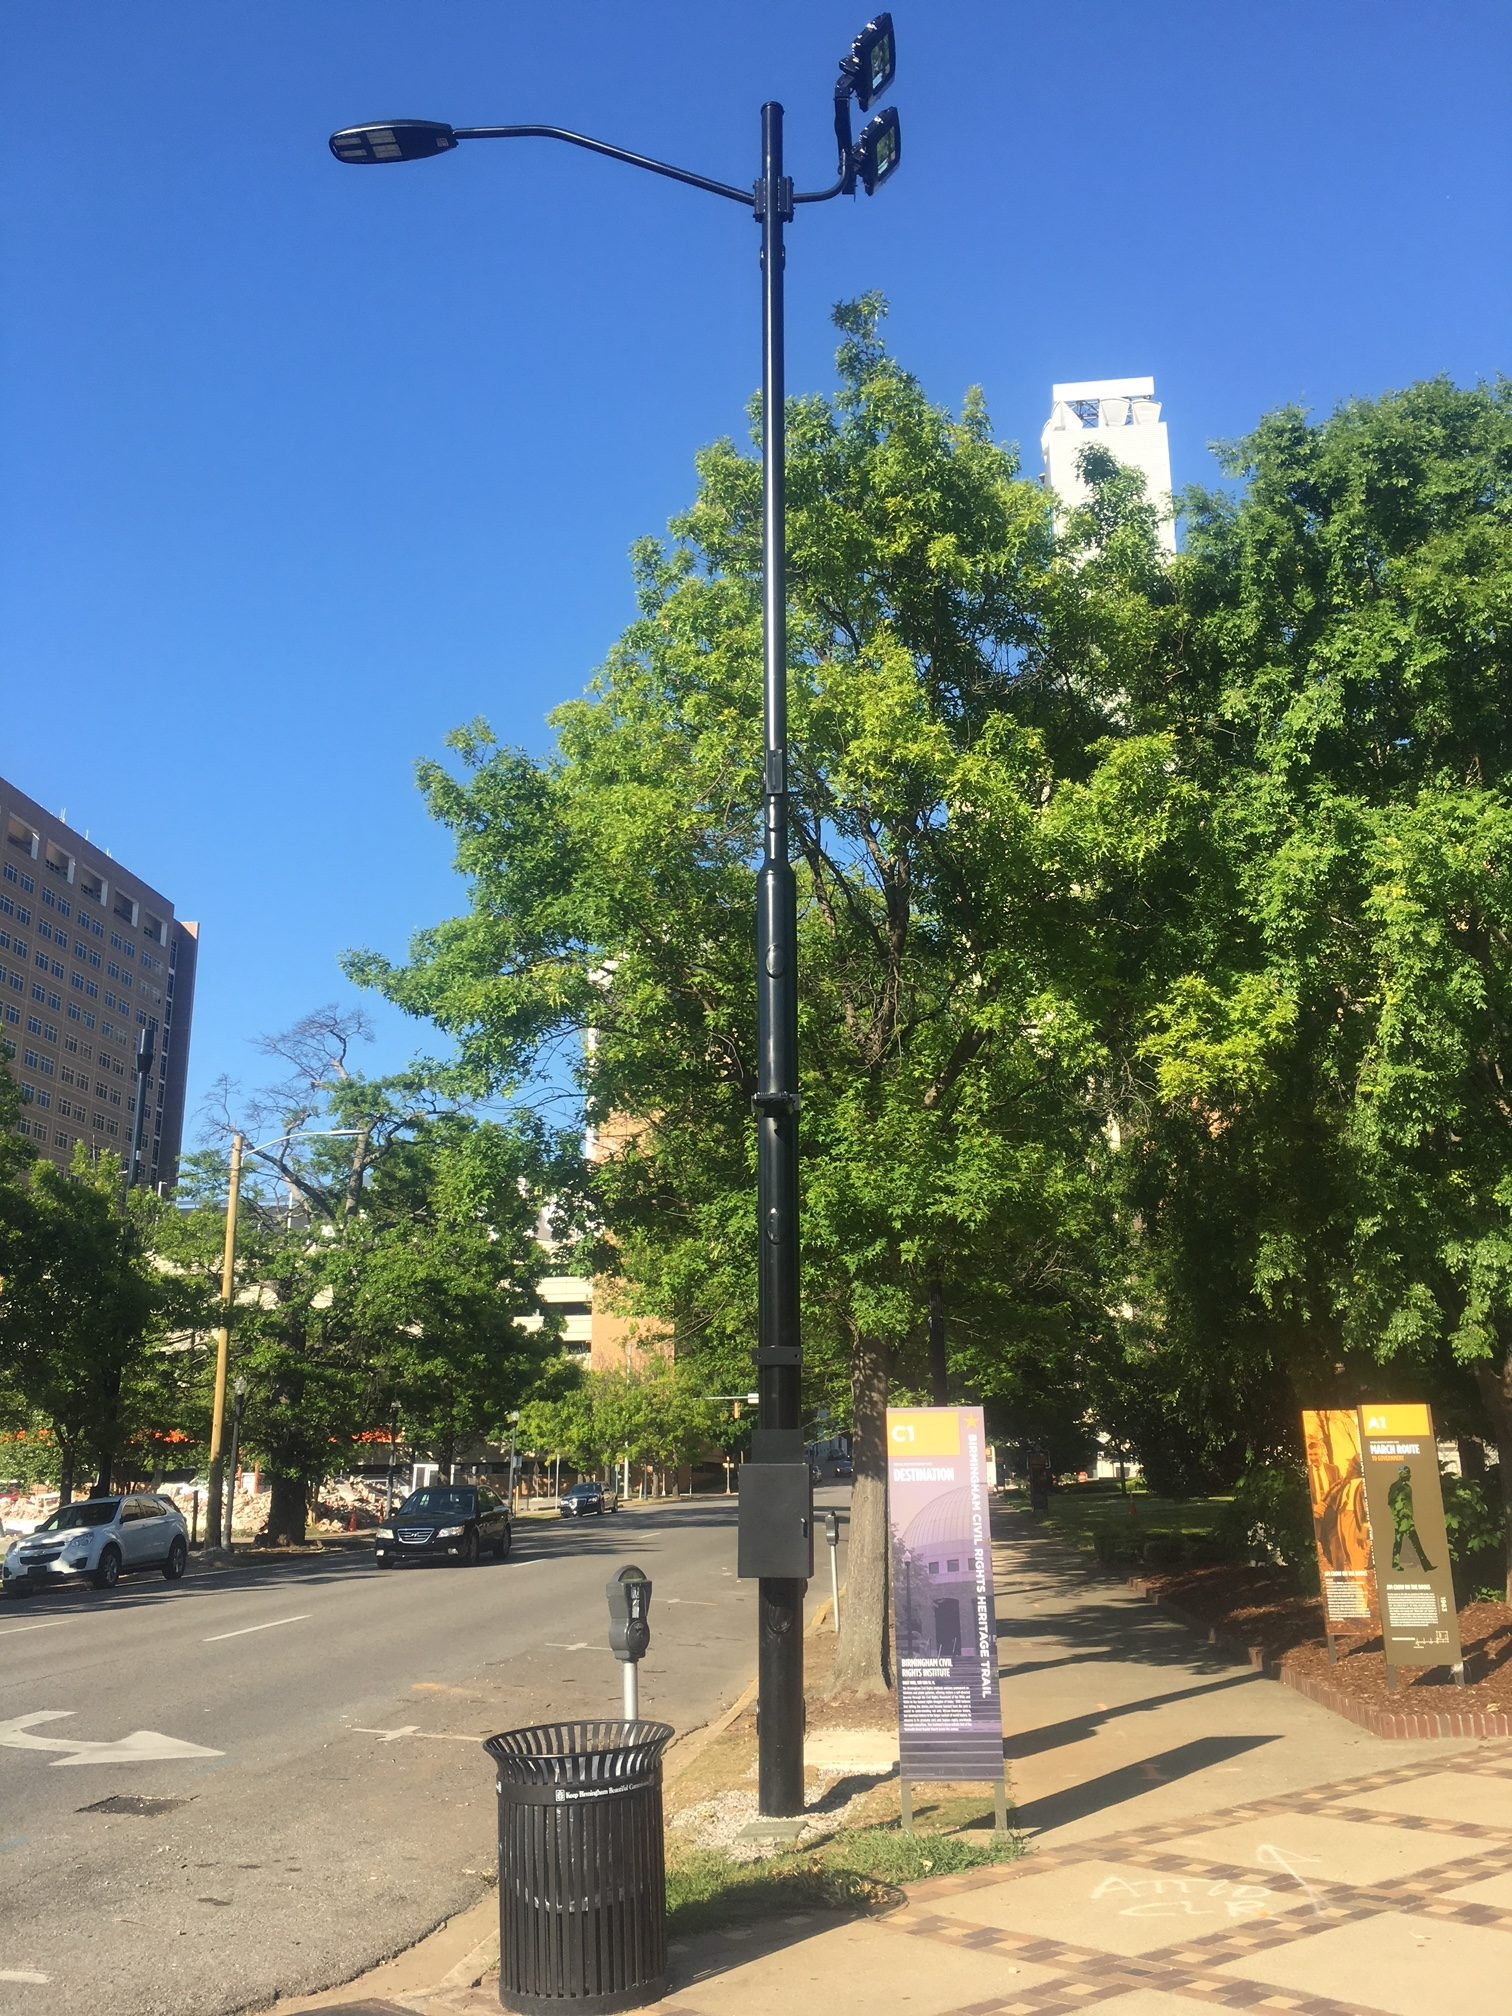 Hapco Smart Pole